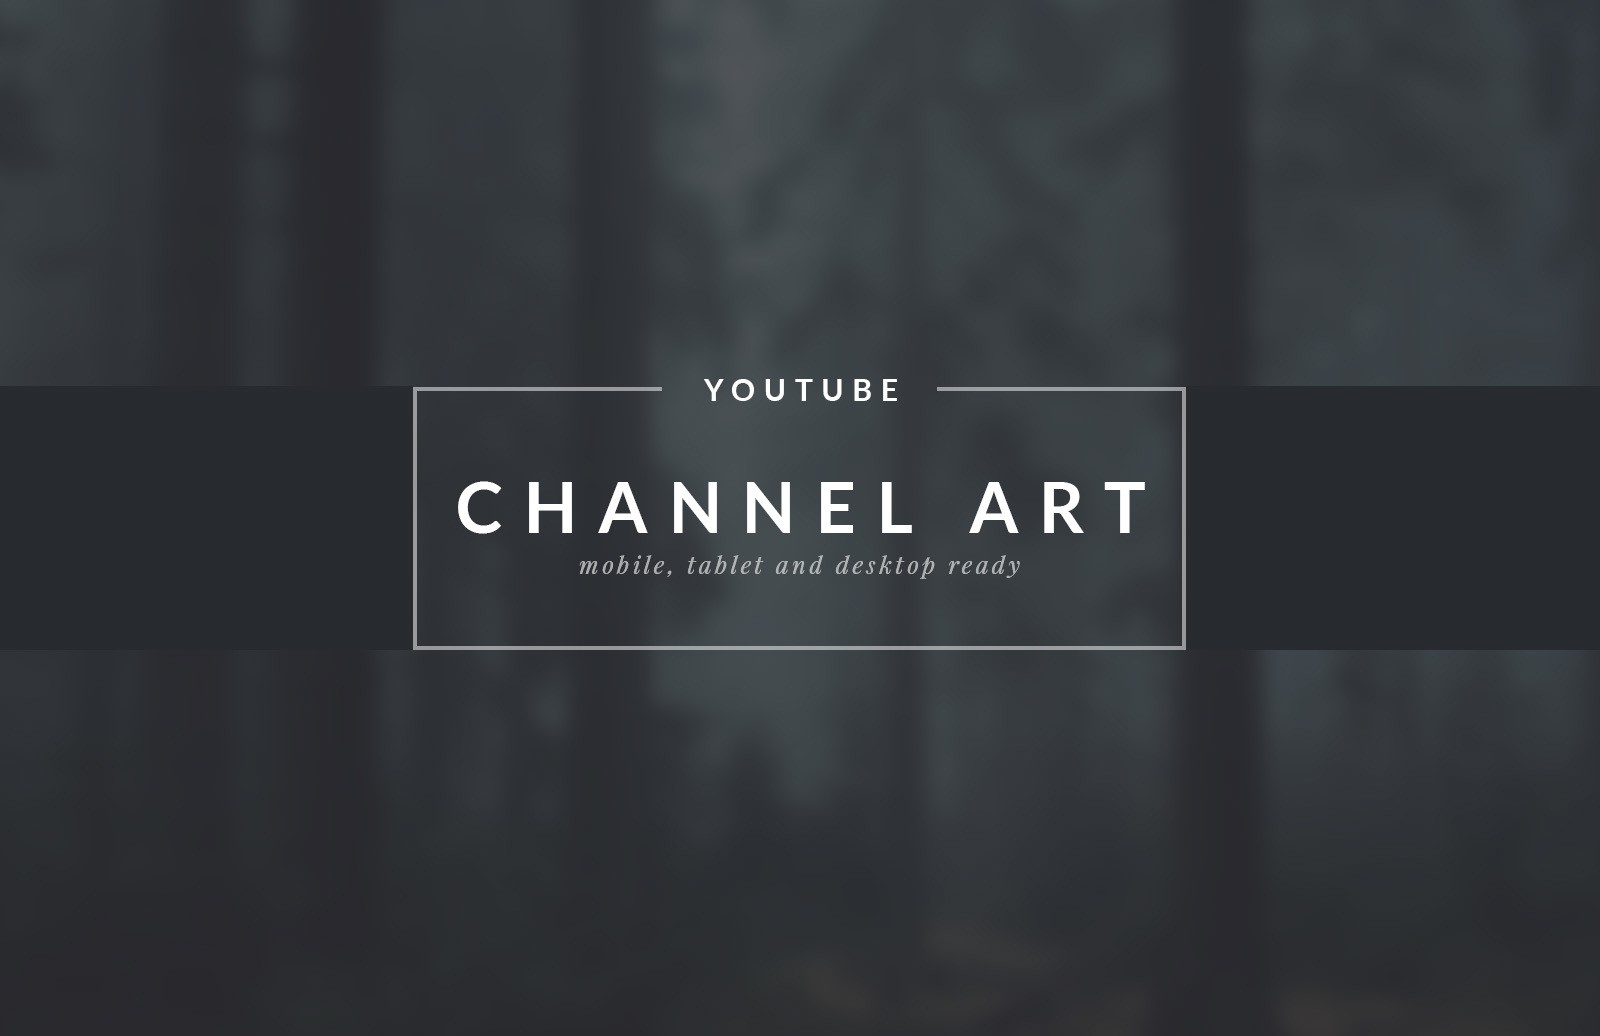 YouTube Channel Art Templates 1